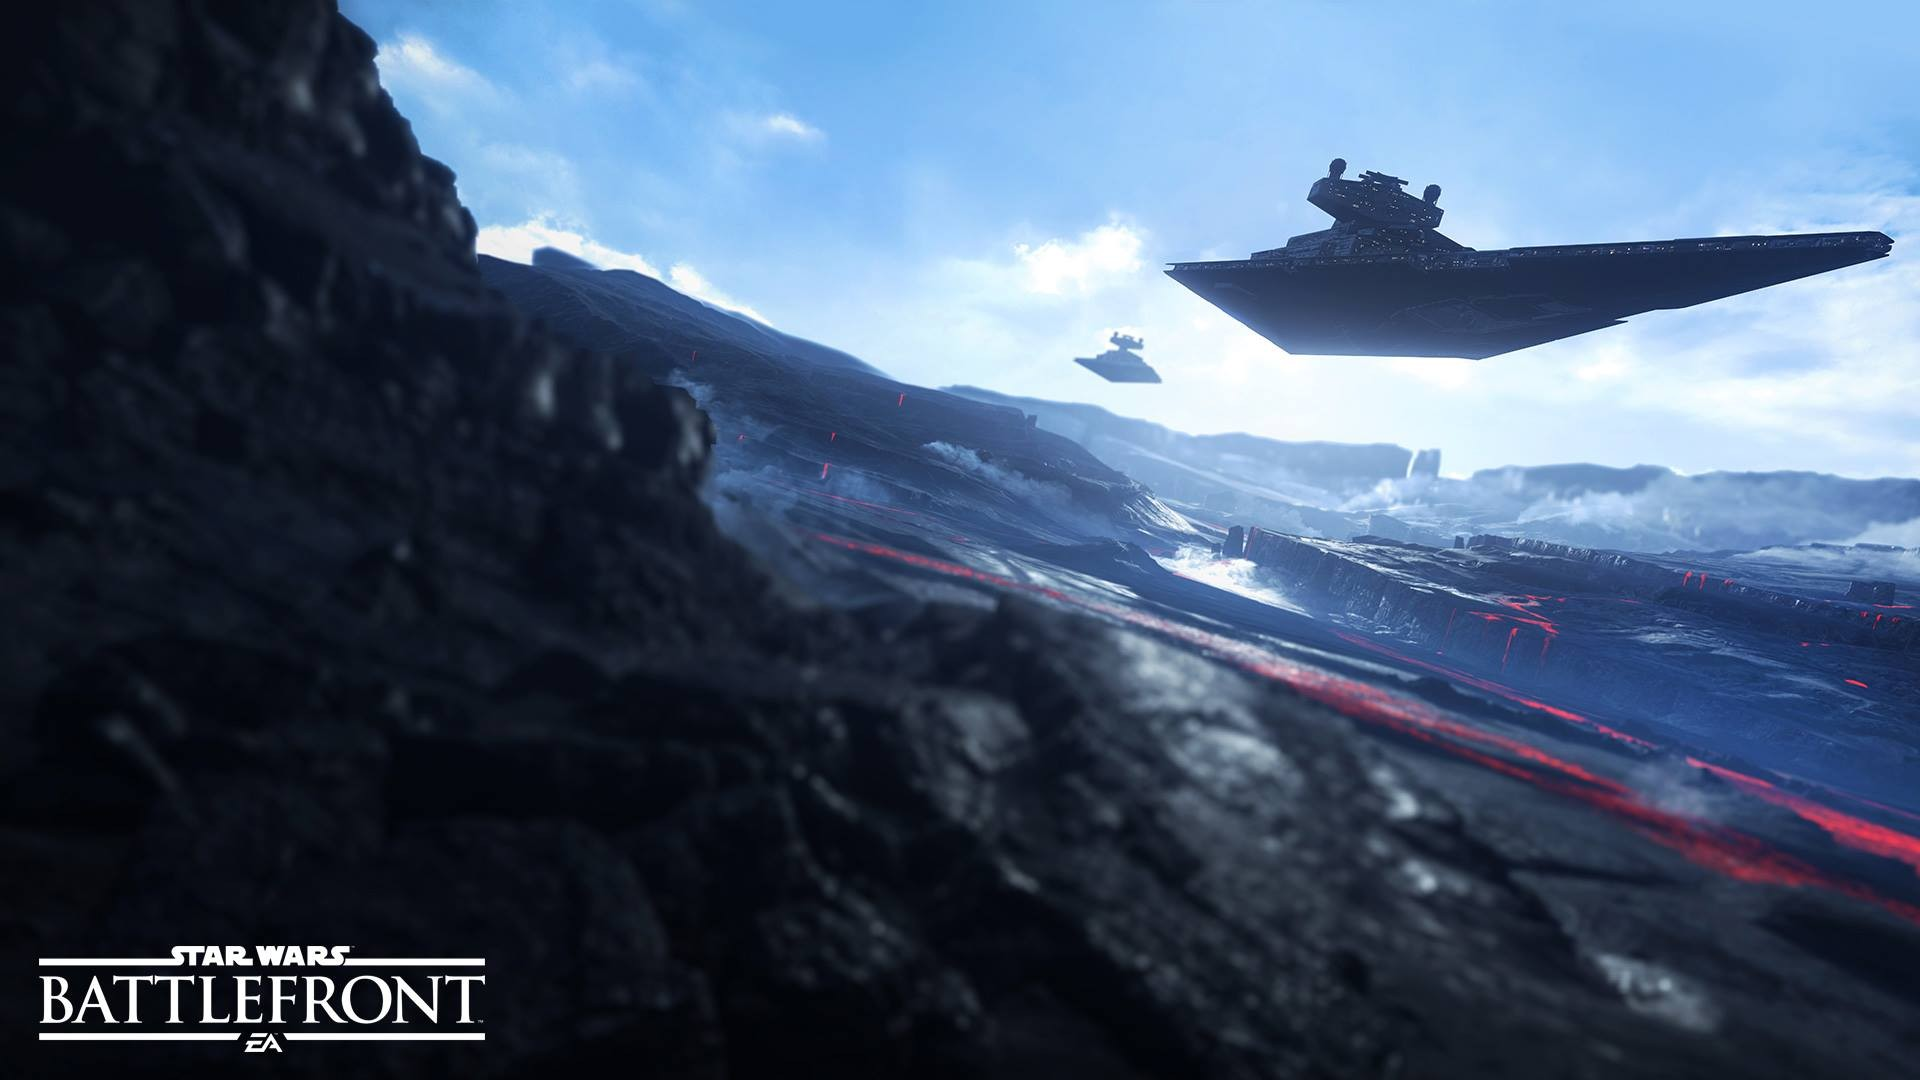 General 1920x1080 Star Wars: Battlefront Star Wars Star Destroyer Galactic Empire Sullust video games spaceship Star Wars Ships